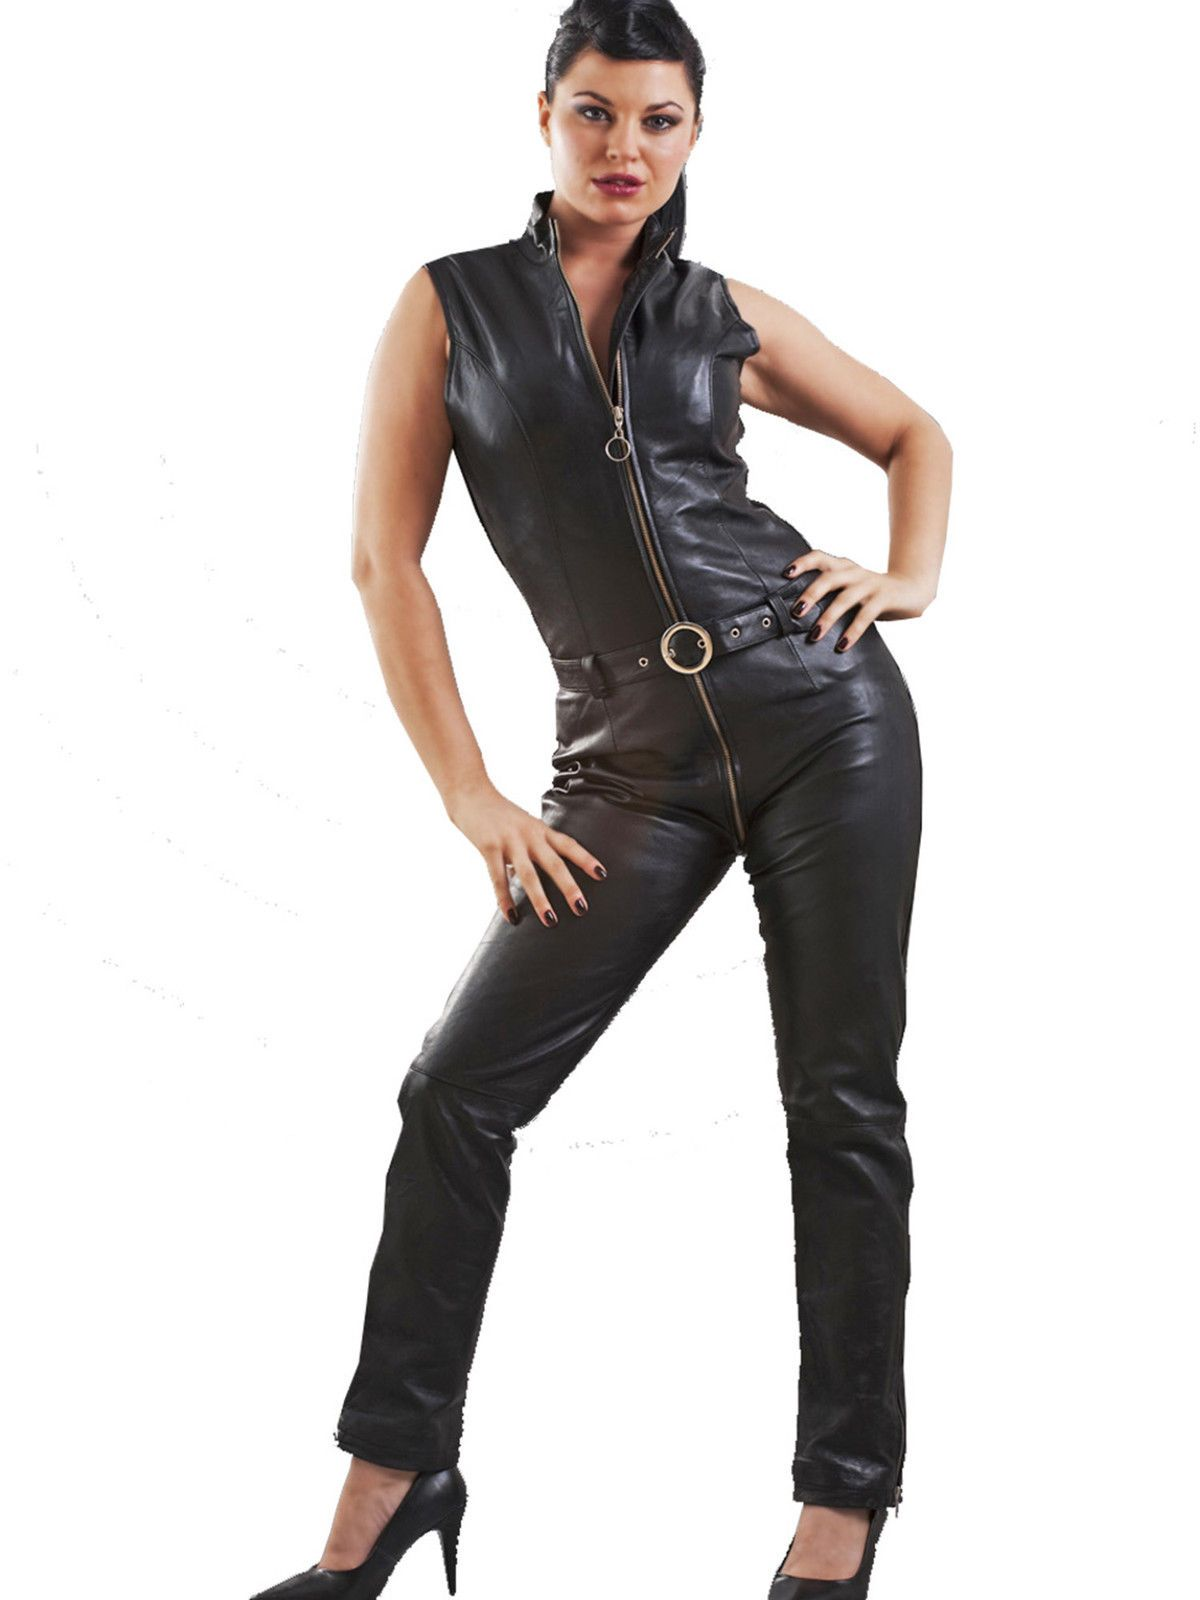 Honour Women's Catsuit in Leather Black Kinky Sleeveless ...